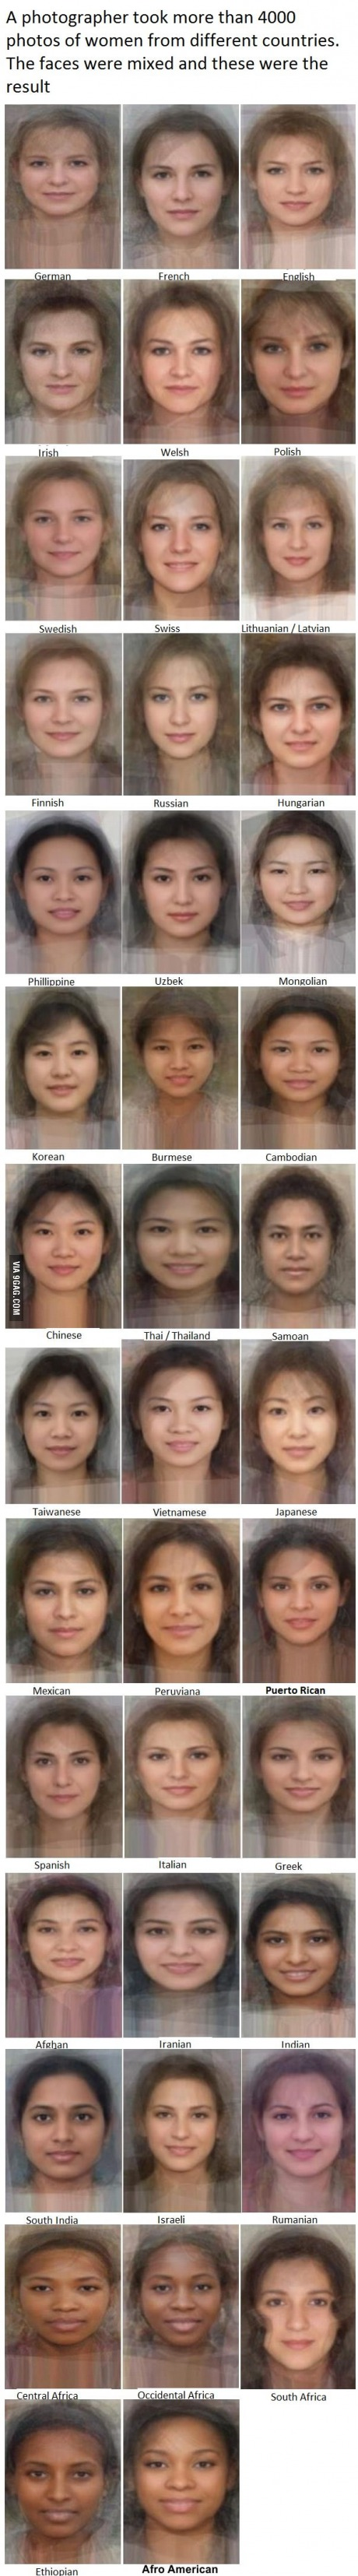 Average face from women from different countries and they are all